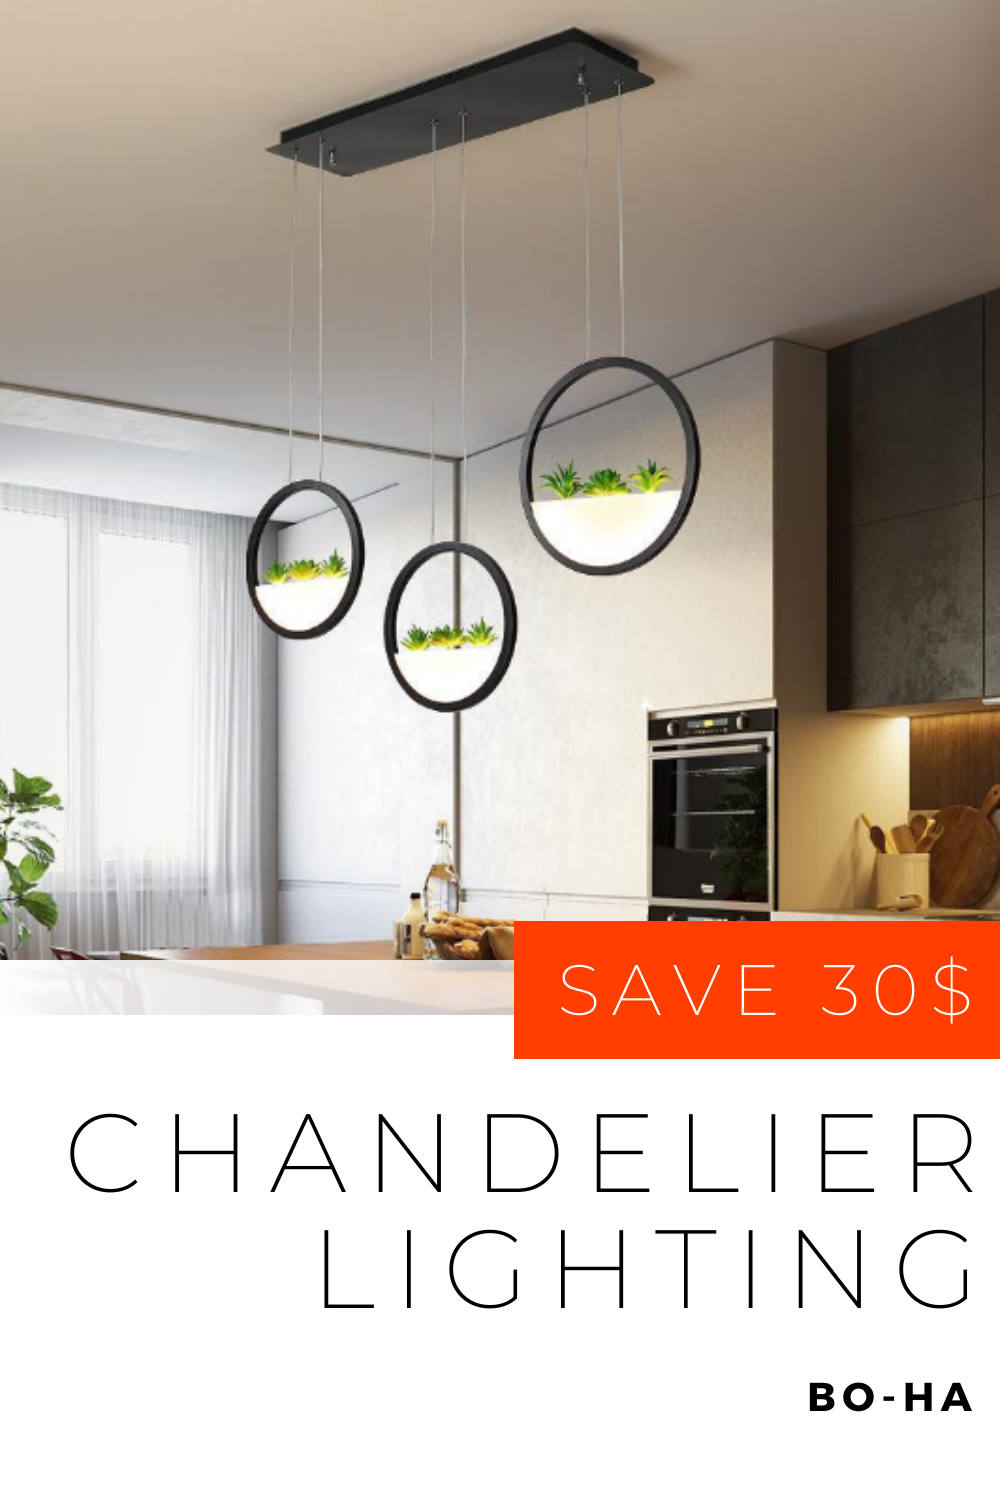 This Hanging Plant Light Chandelier is a unique piece which can be used as a Dining Room Chandelier Lighting, Living Room Chandelier Lighting or in the Entryway and Kitchen. Within 10 minutes you can install the Light Fixture on your Ceiling and enjoy every second of it! - #ChandelierLighting #Lighting #DiningRoomChandelierLighting #PlantChandelier #KitchenChandelierLighting #PlantLighting #GardenDesignLamp #BathroomLightFixture #LivingRoomLighting #PlanterChandelier #LivingRoomLighting